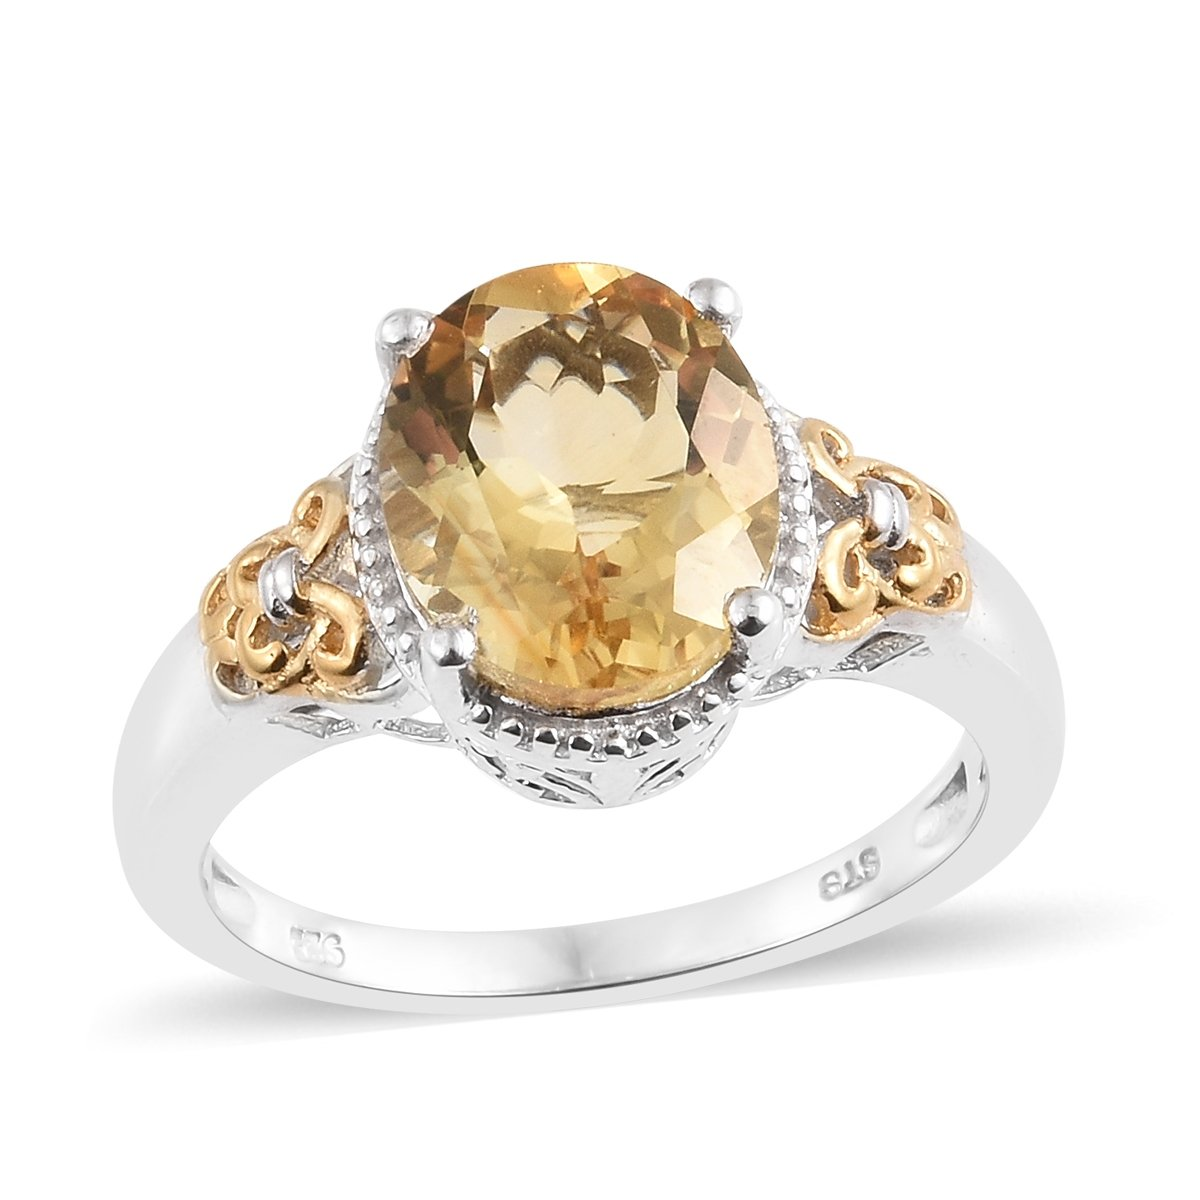 925 Sterling Silver 14K Yellow Gold and Platinum Plated 3.7 Cttw Oval Citrine Ring Size 11 by Shop LC